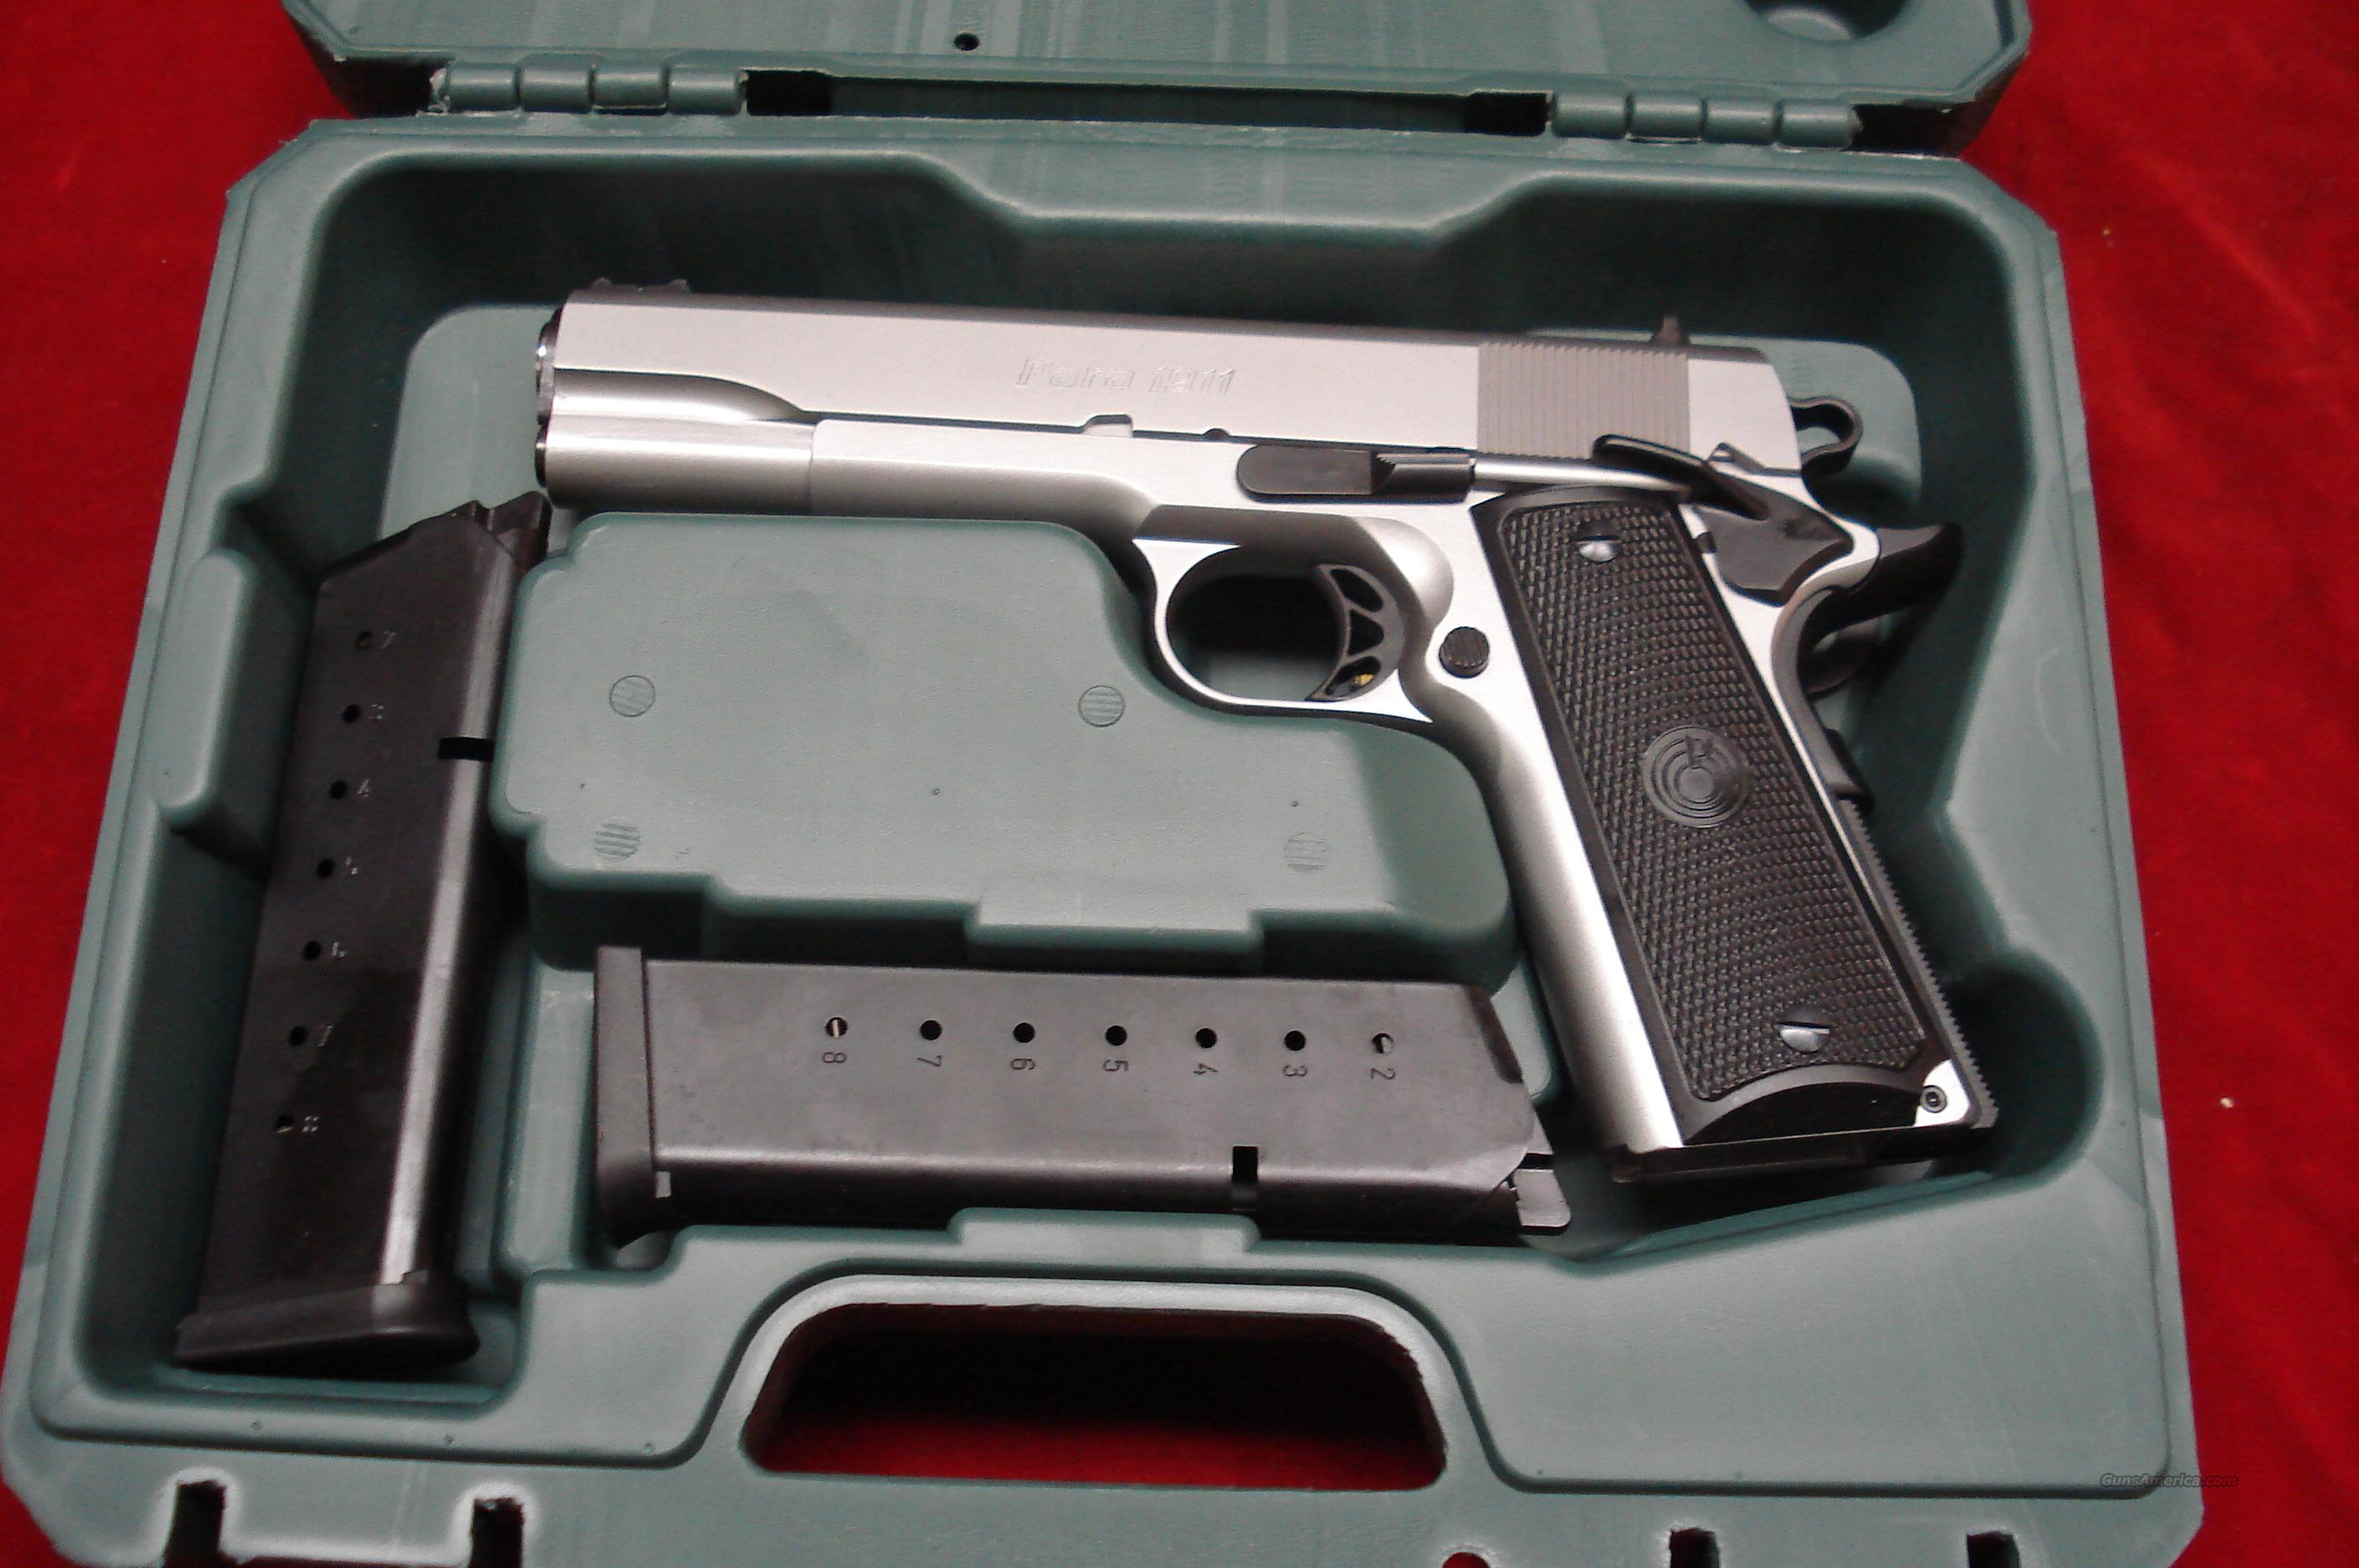 PARA ORDNANCE STAINLESS  EXPERT 45ACP NEW IN THE BOX  Guns > Pistols > Para Ordnance Pistols